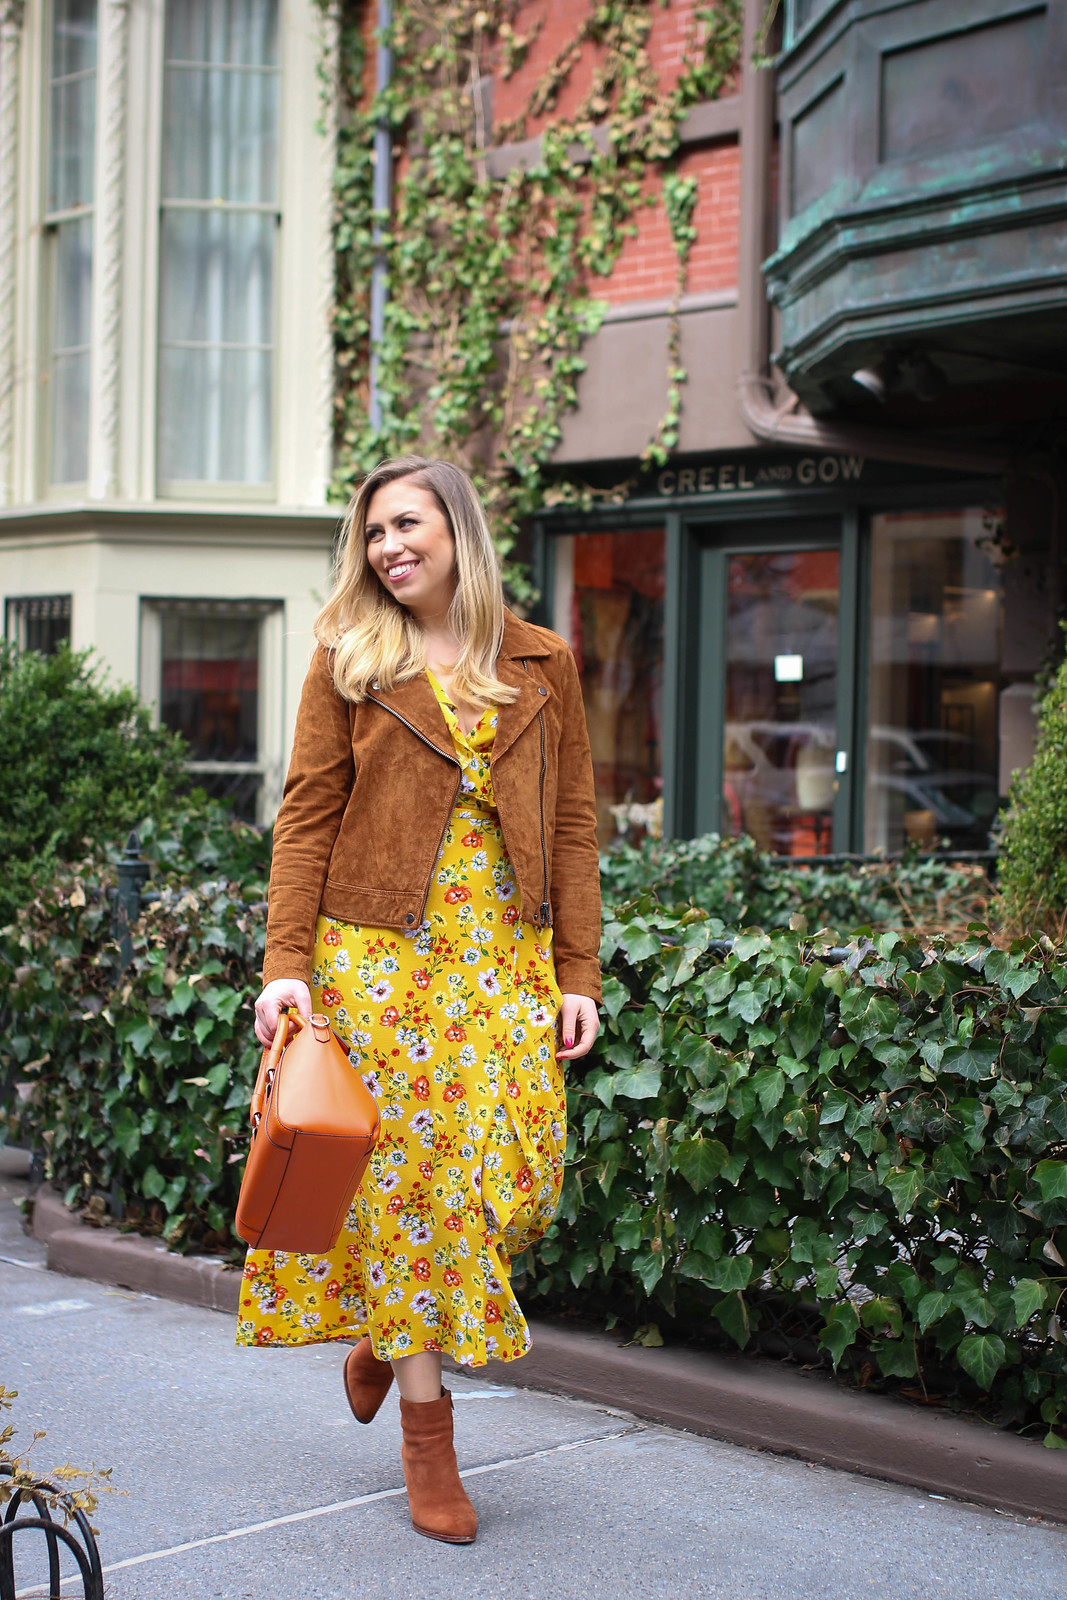 Yellow Floral Maxi Wrap Dress Suede Moto Jacket Orange Bag Suede Booties Spring in NY Outfit Inspiration Fashion Blogger Jackie Giardina